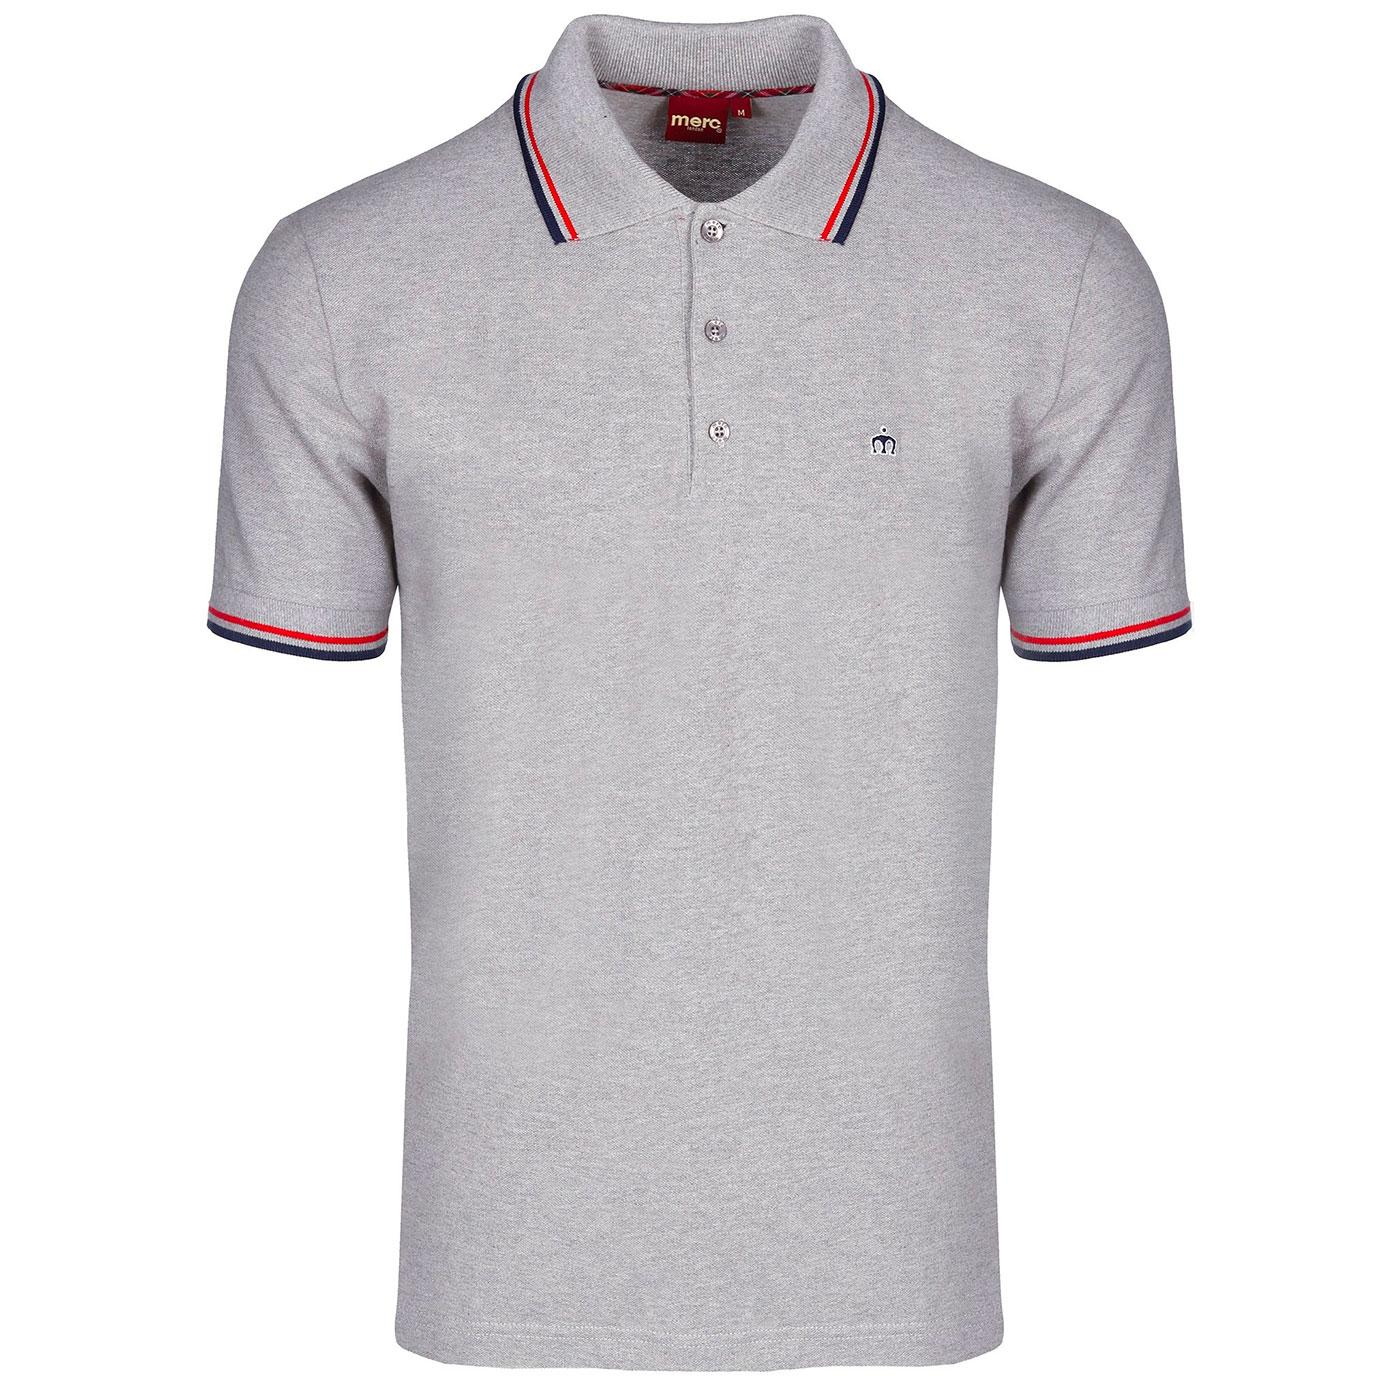 Card MERC Mod Retro Mens Tipped Pique Polo - Grey